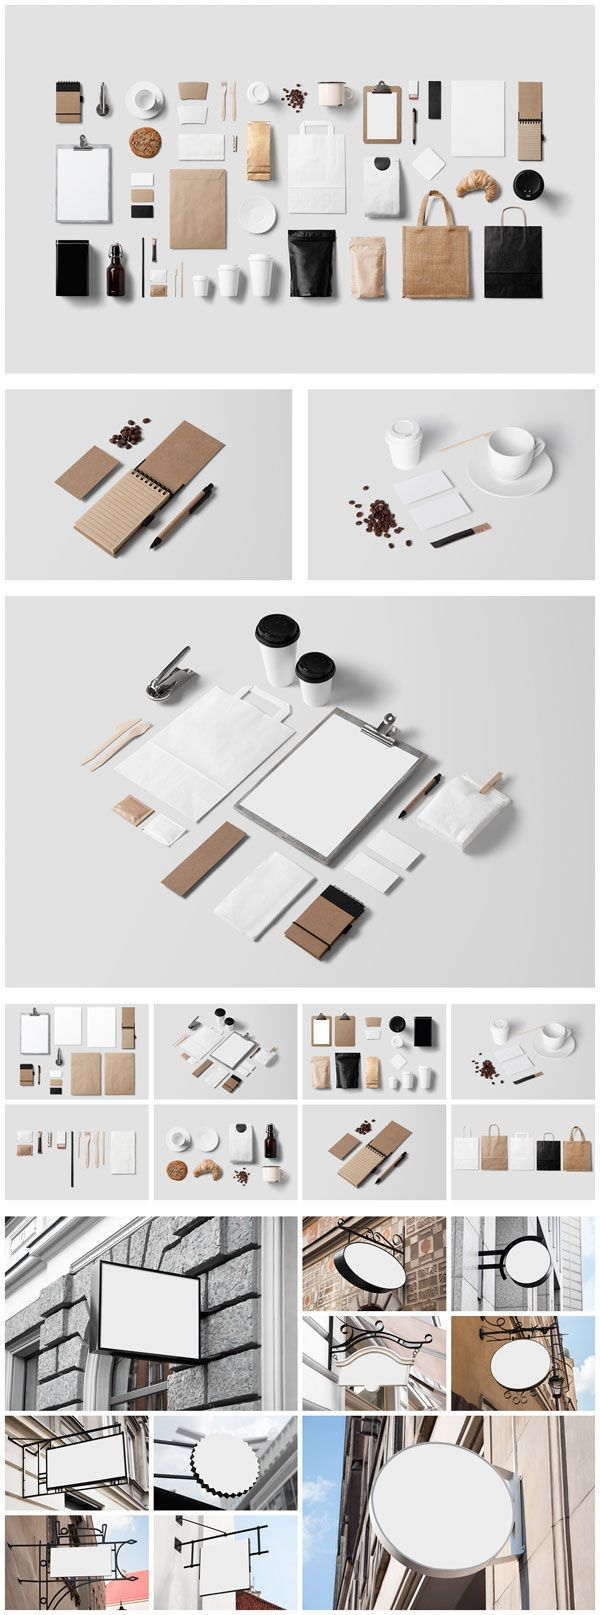 Coffee stationery mockup as well as 10 sign mockups.